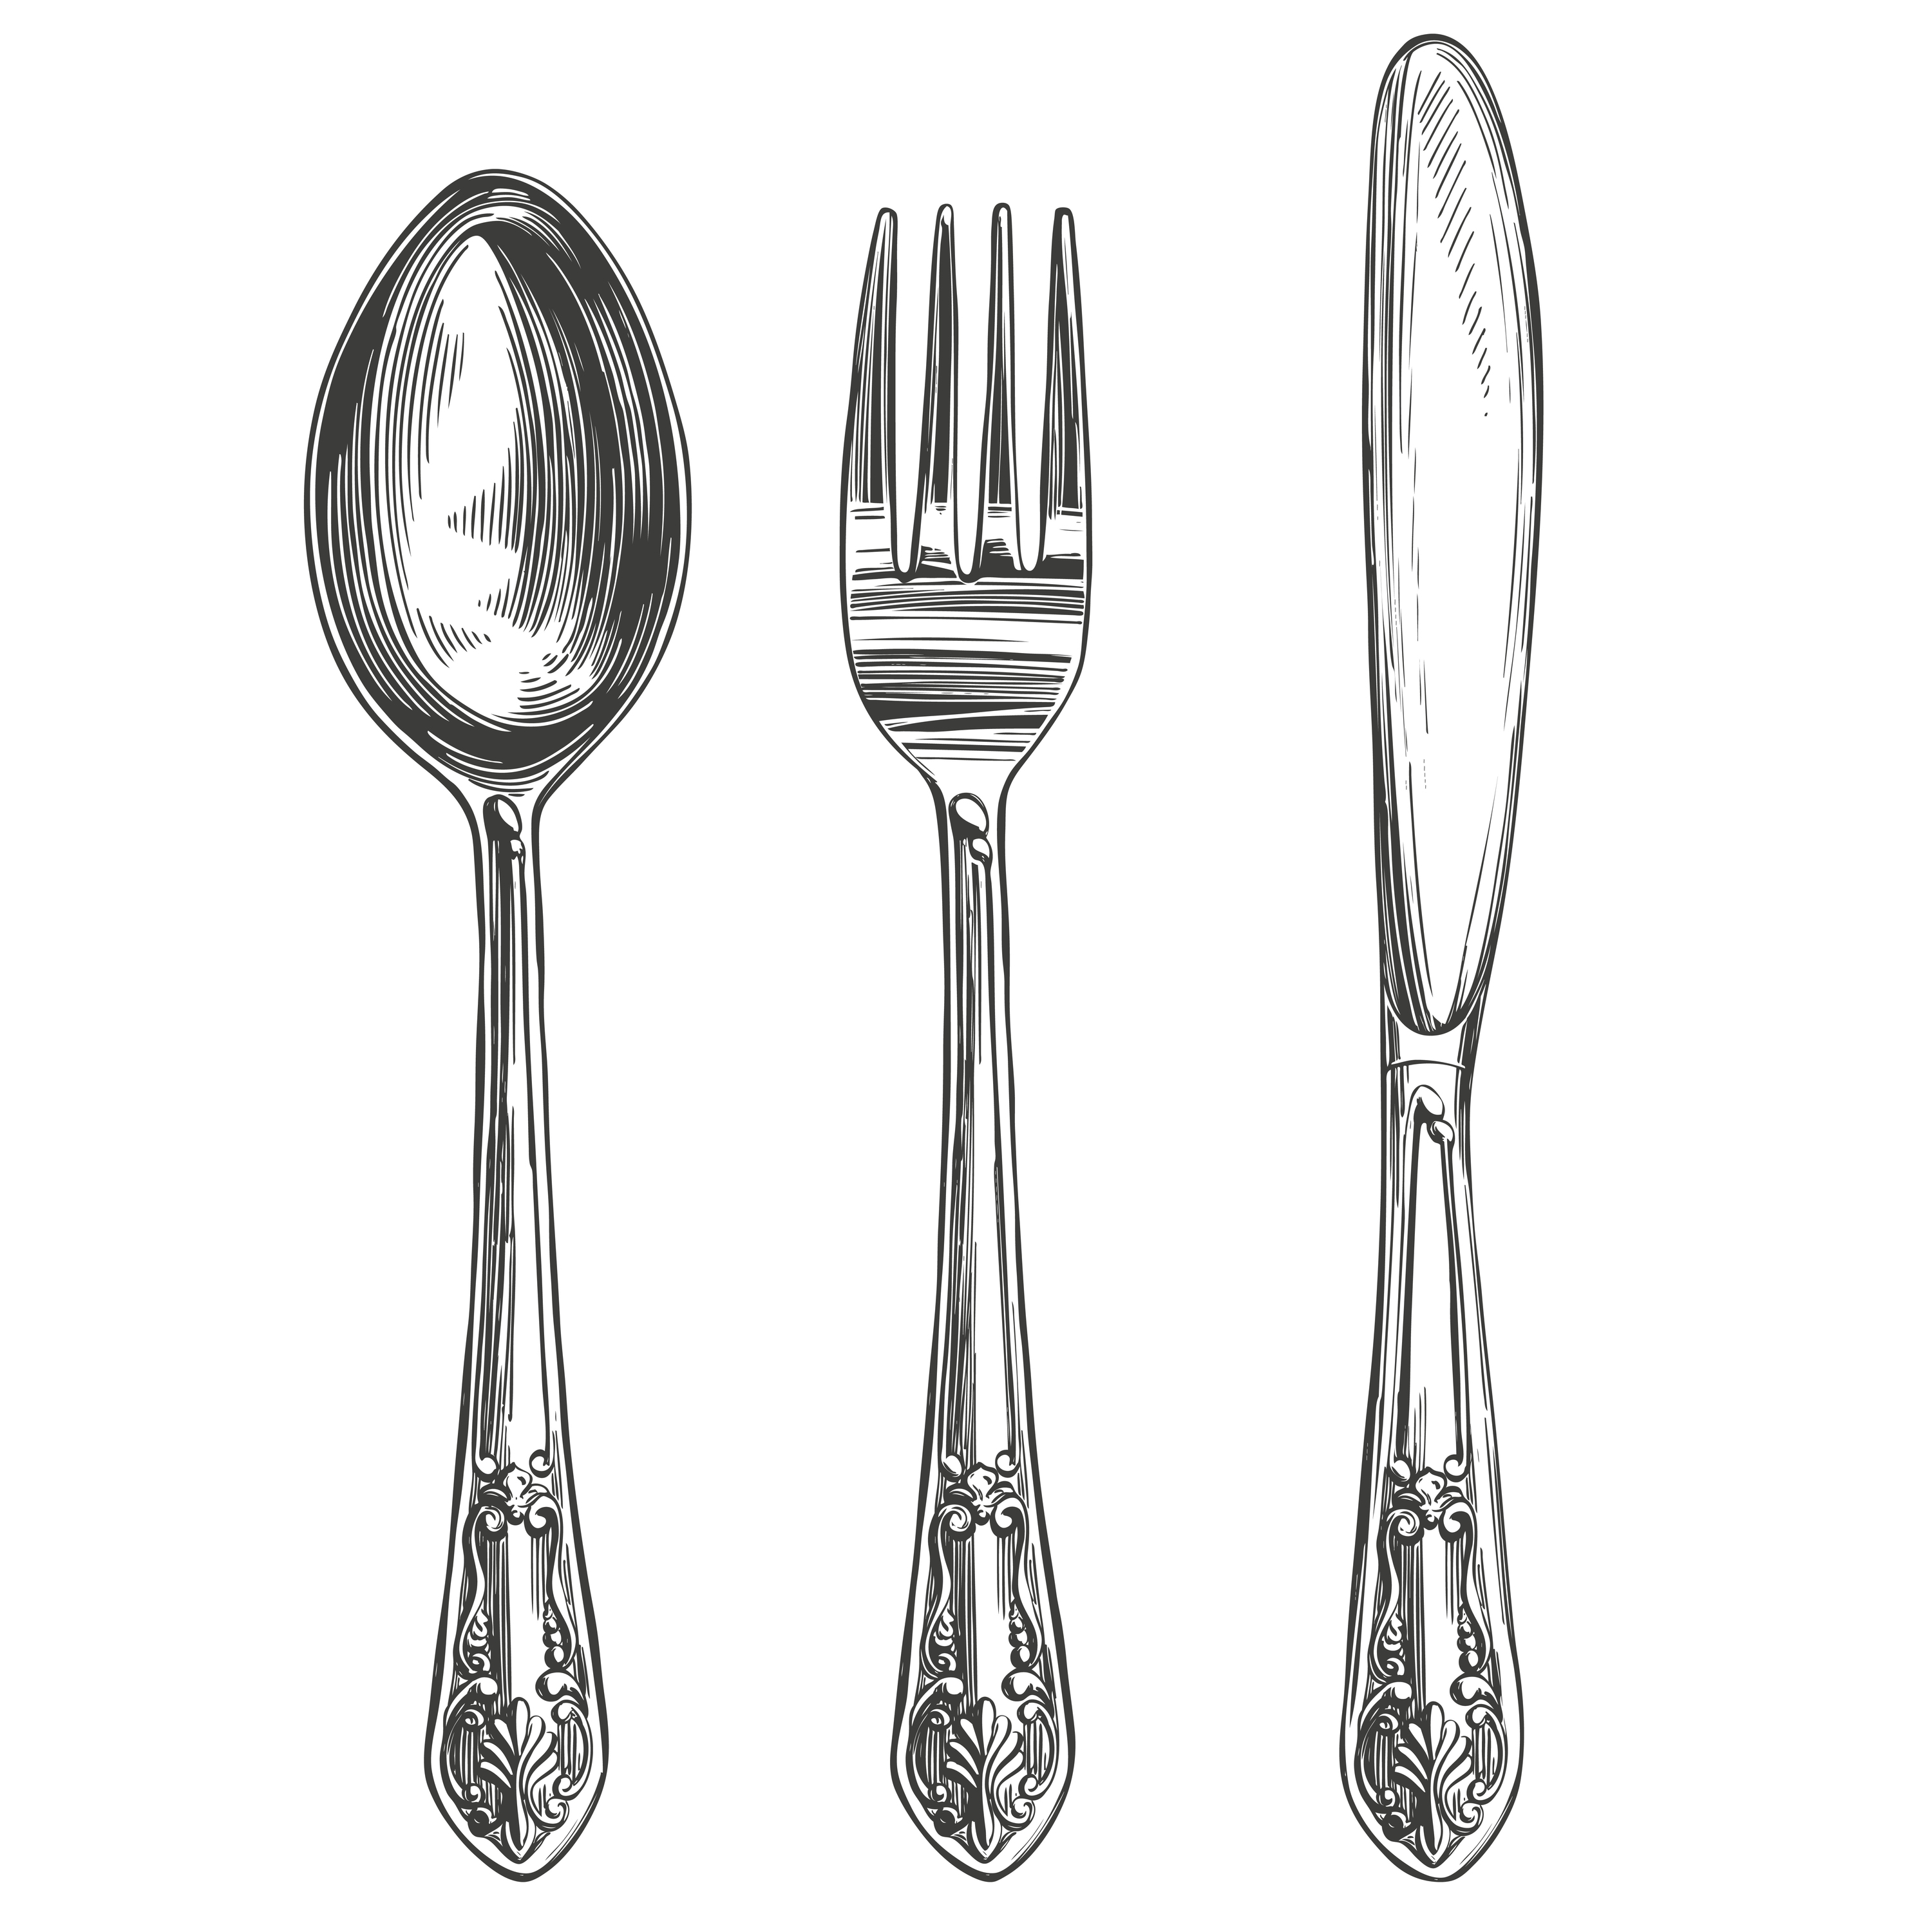 Illustrate knife, fork and spoon